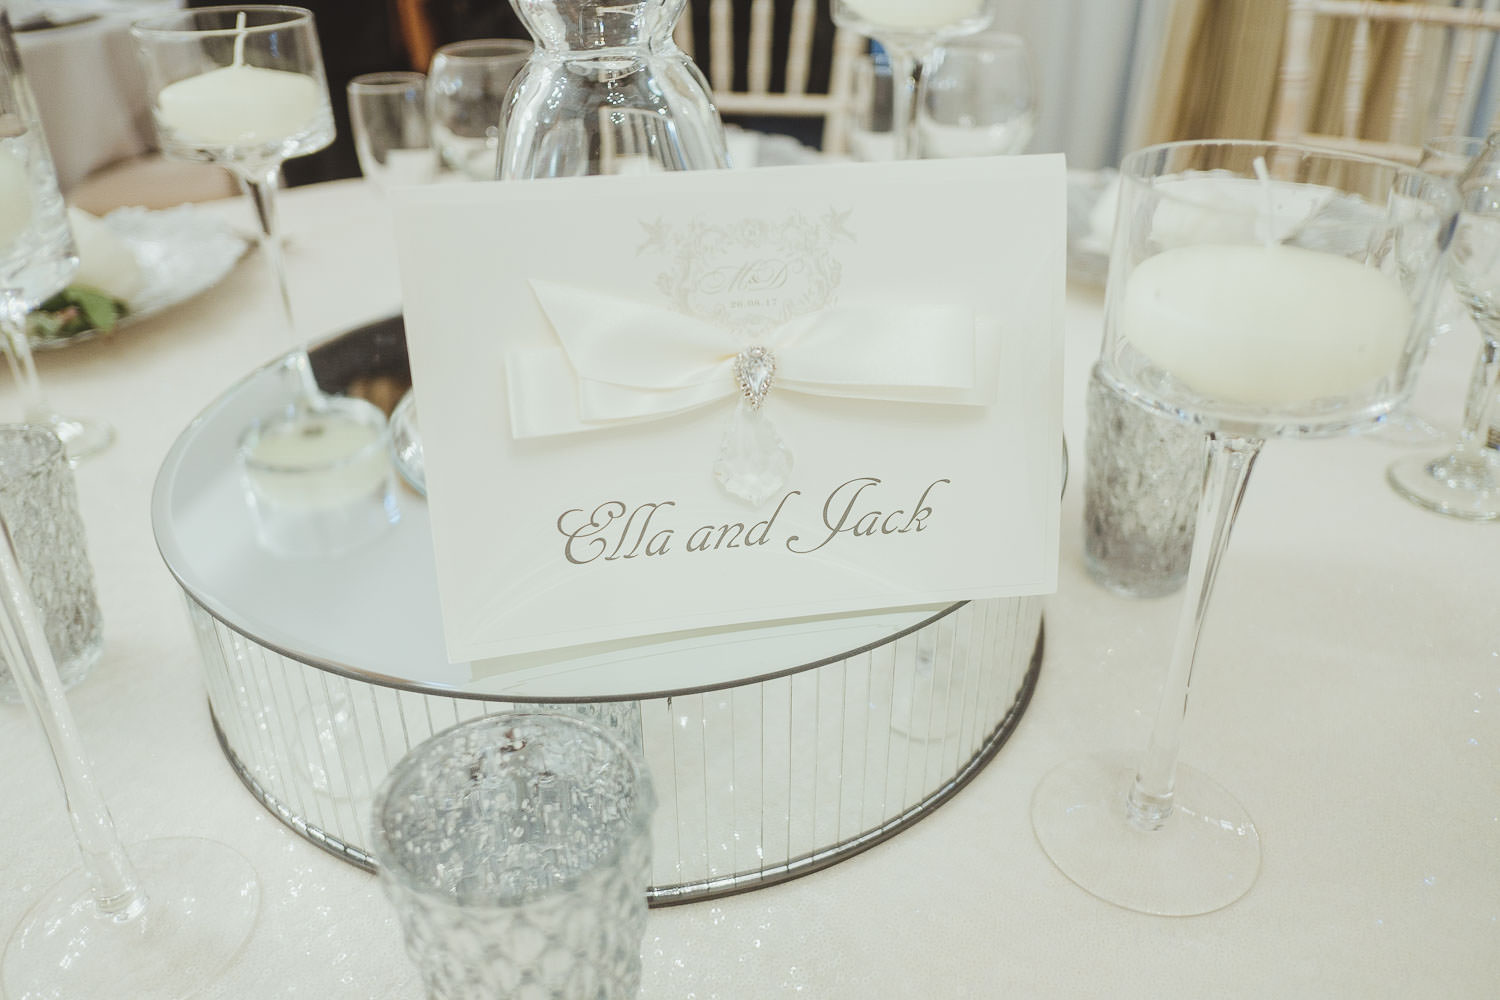 Wedding stationery at Horton Grange